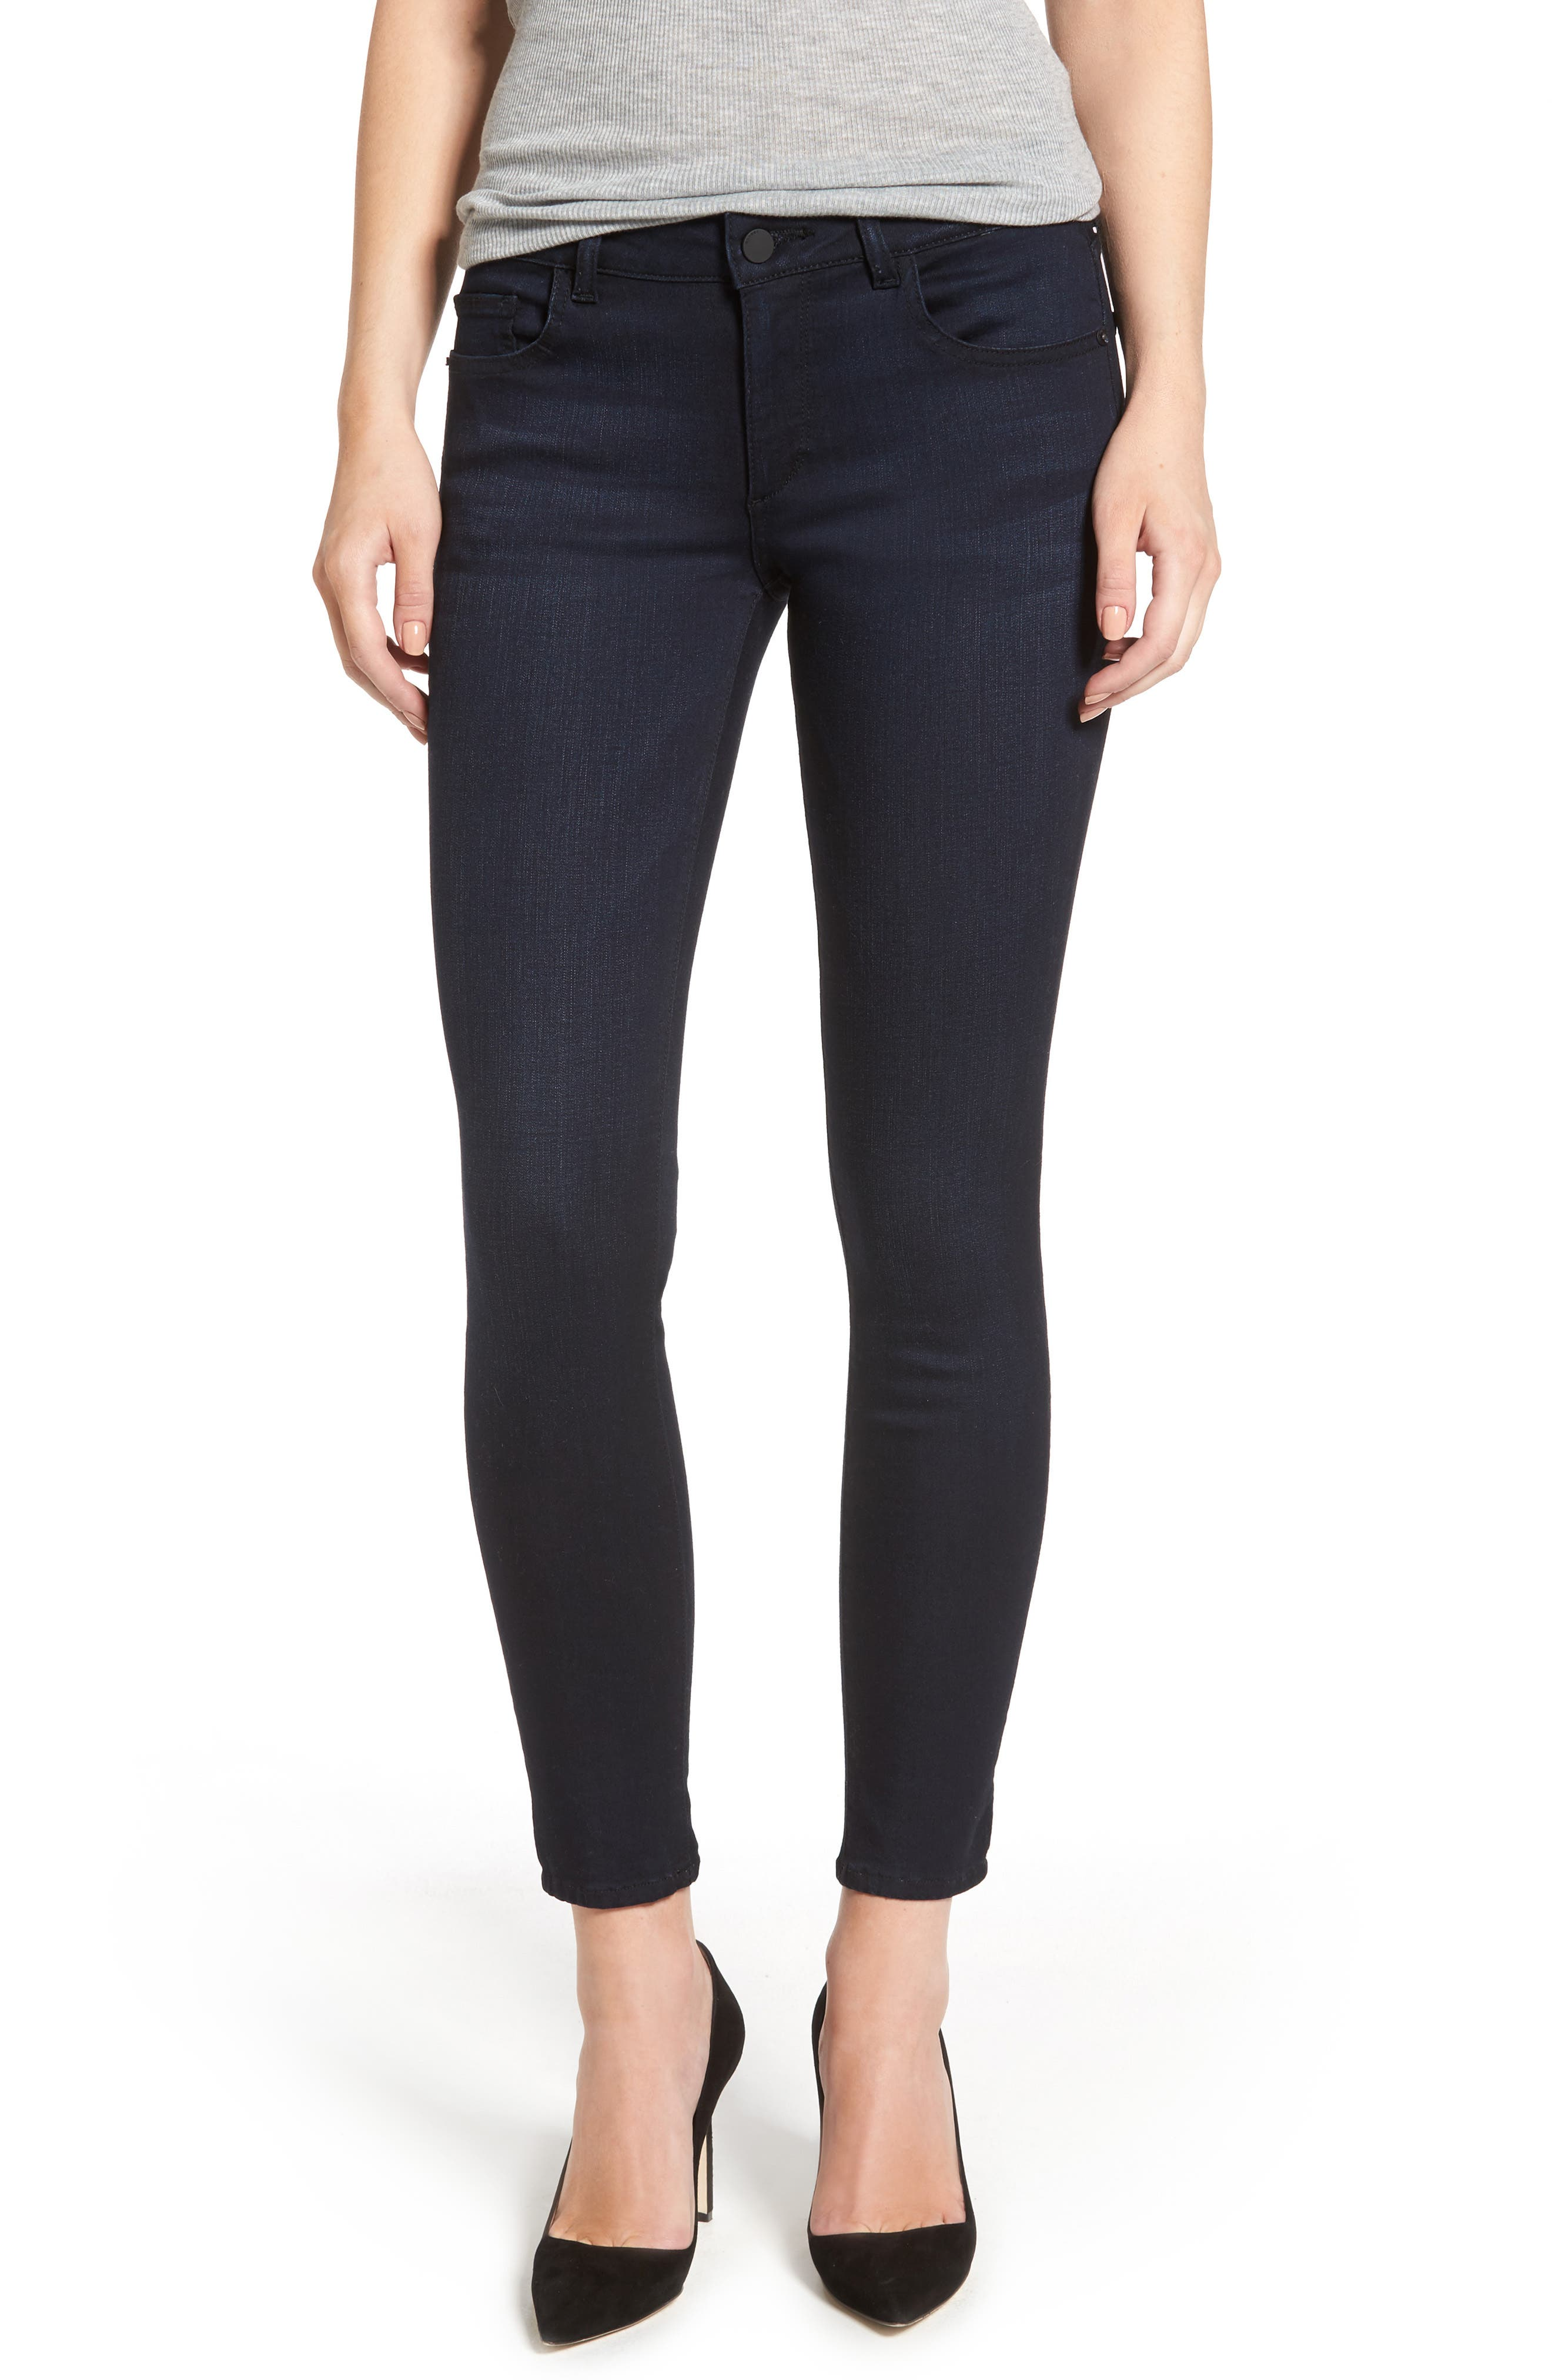 Main Image - DL1961 Margaux Ankle Skinny Jeans (Bentley)